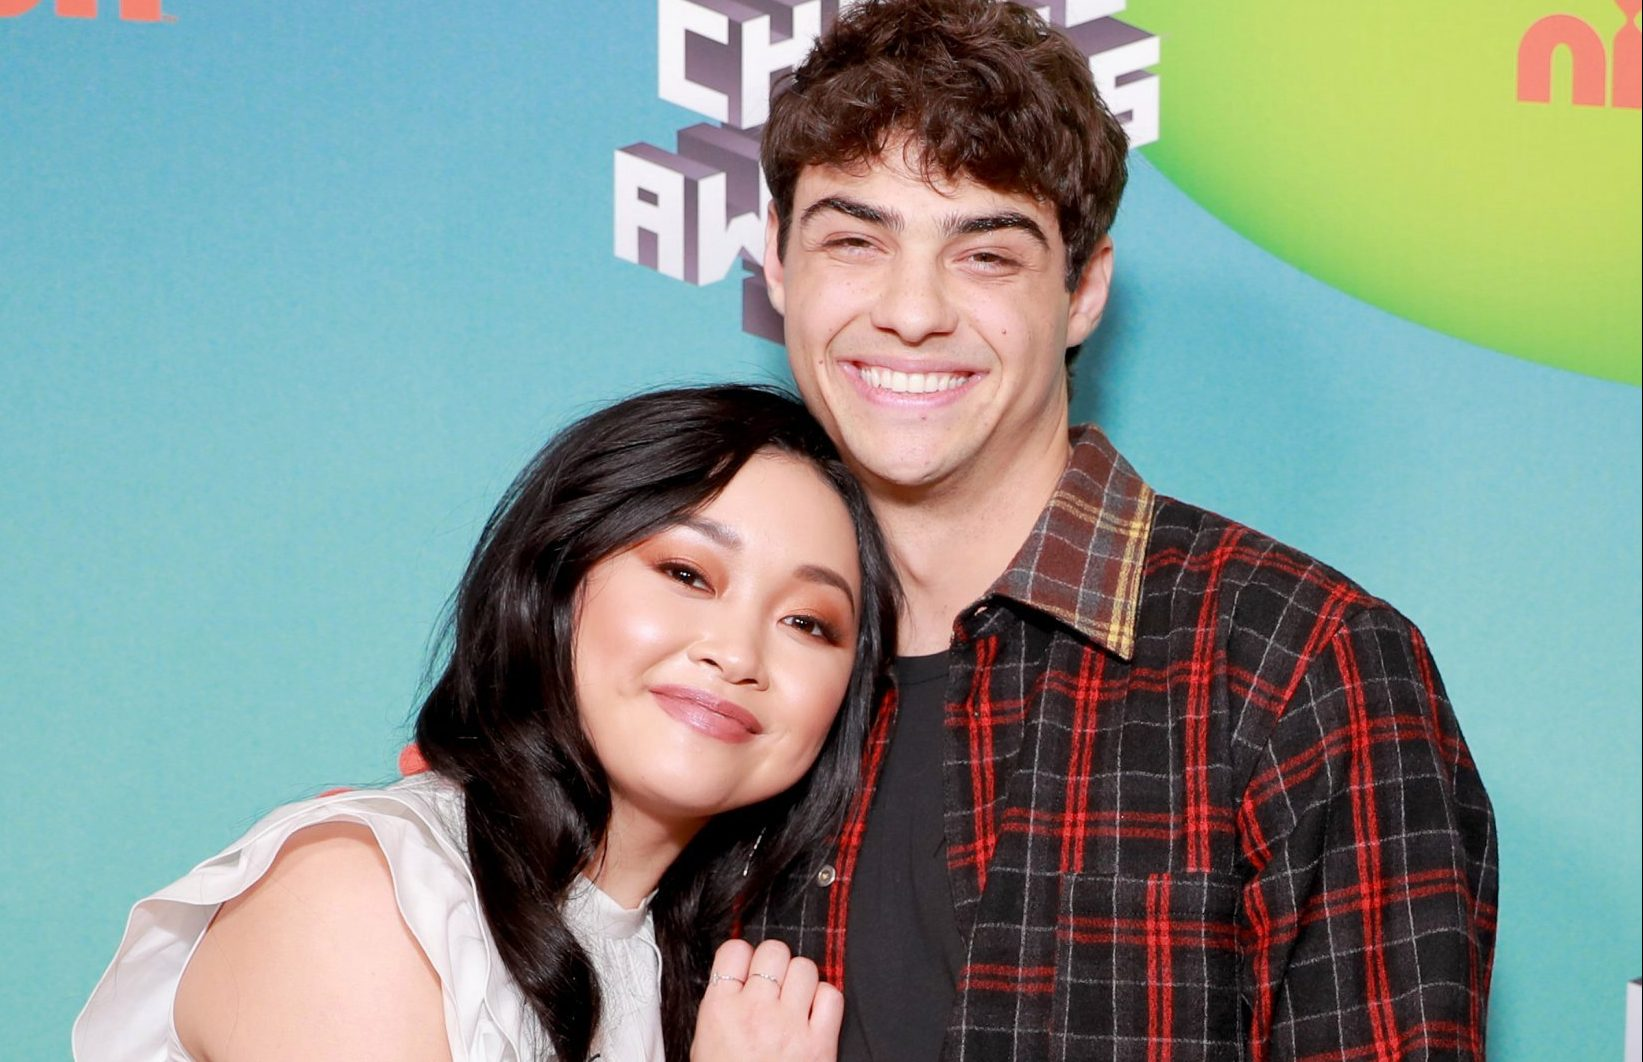 Lana Condor explains what she's learned working with TATBILB co-star Noah Centineo